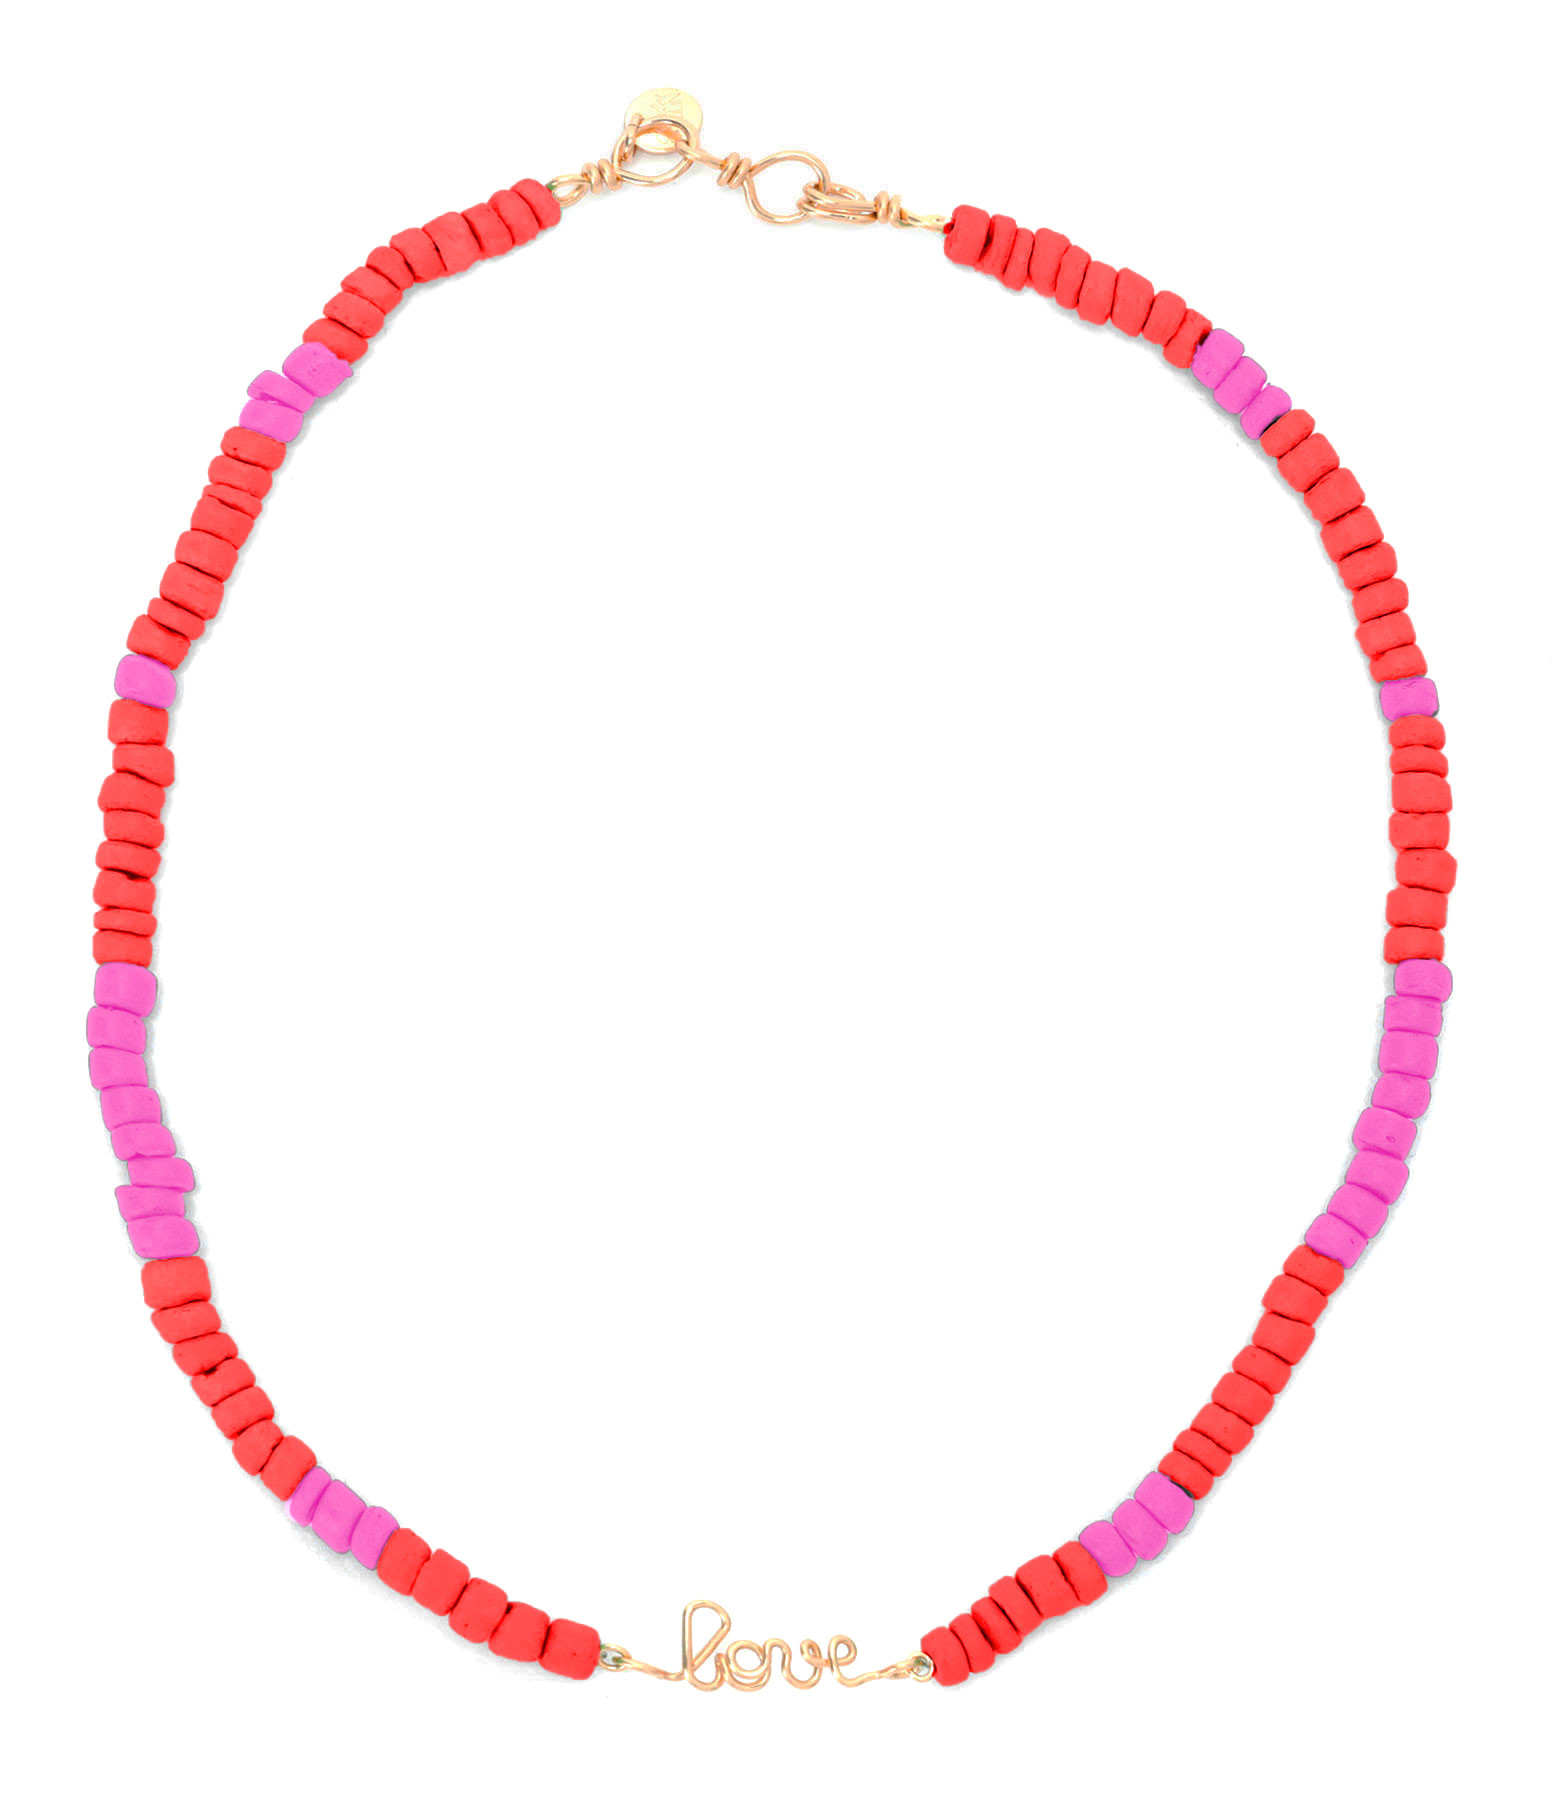 ATELIER PAULIN - Collier Medina Love Corail Rose Gold Filled, Collection Marrakech